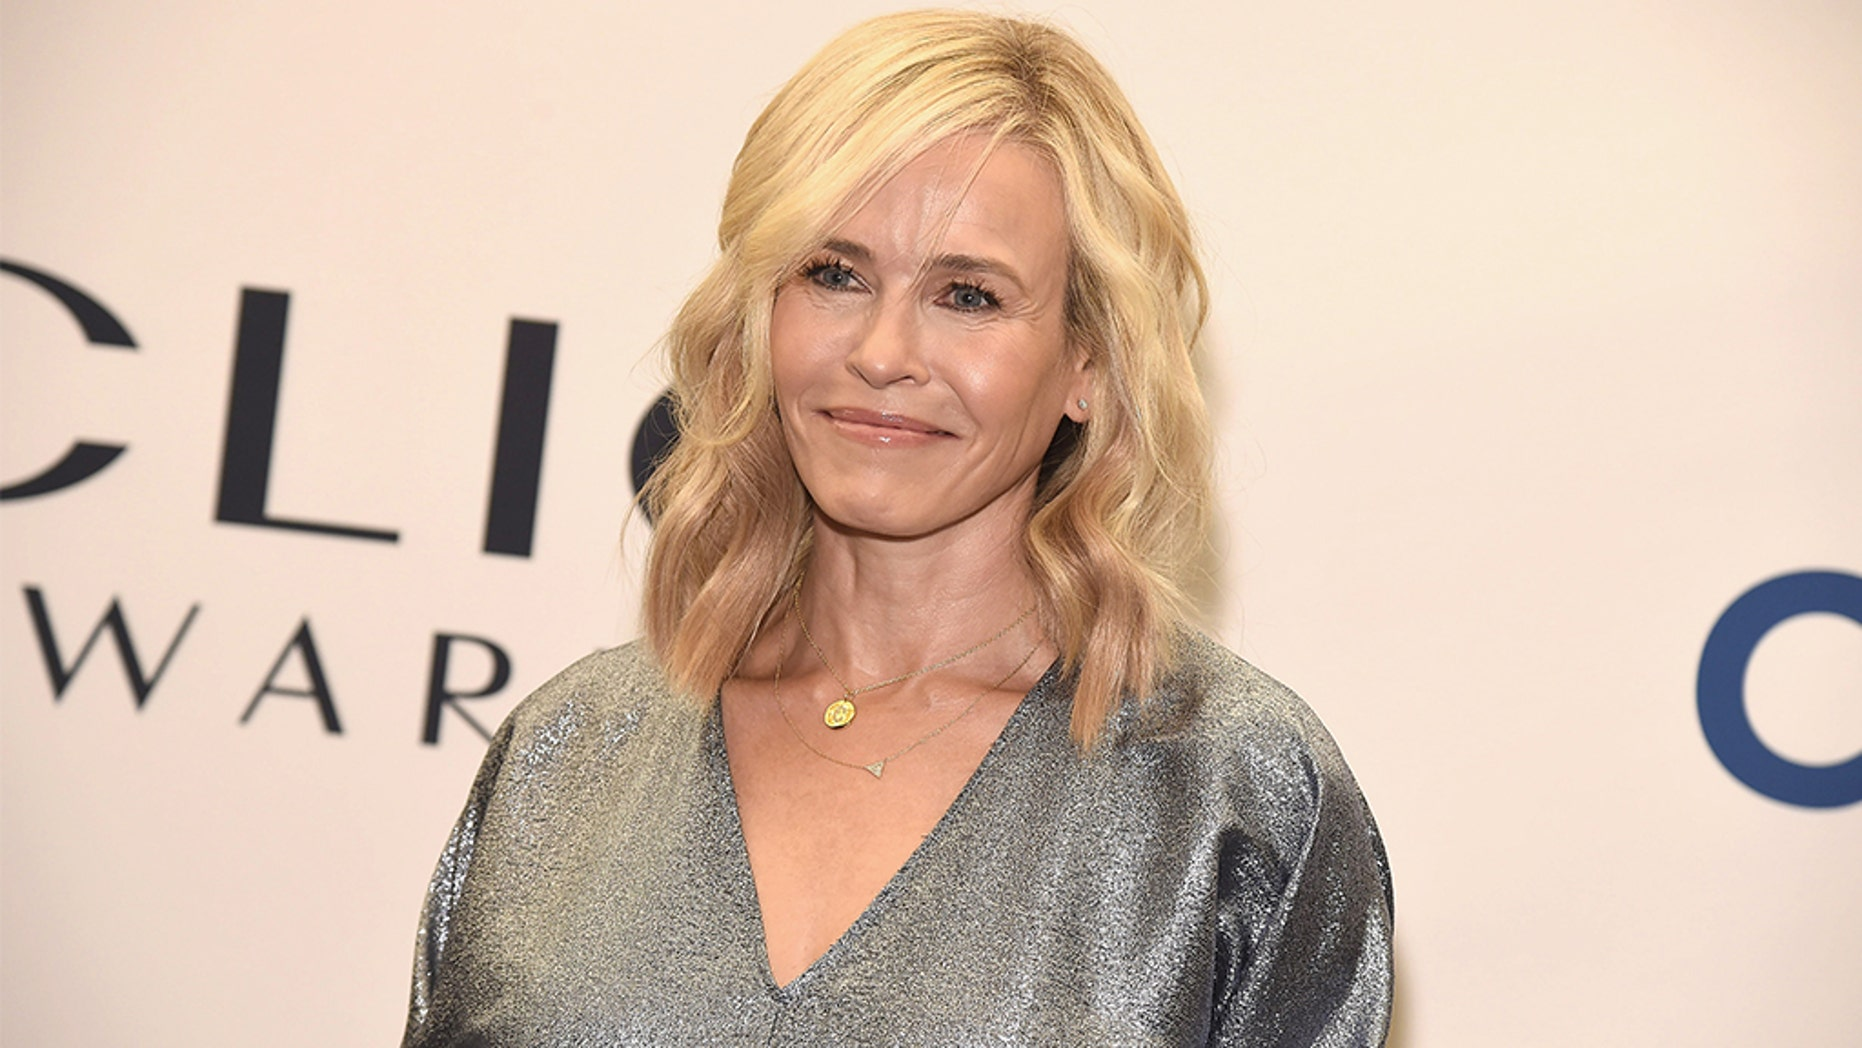 Chelsea Handler has been encouraging people to vote on Election Day.